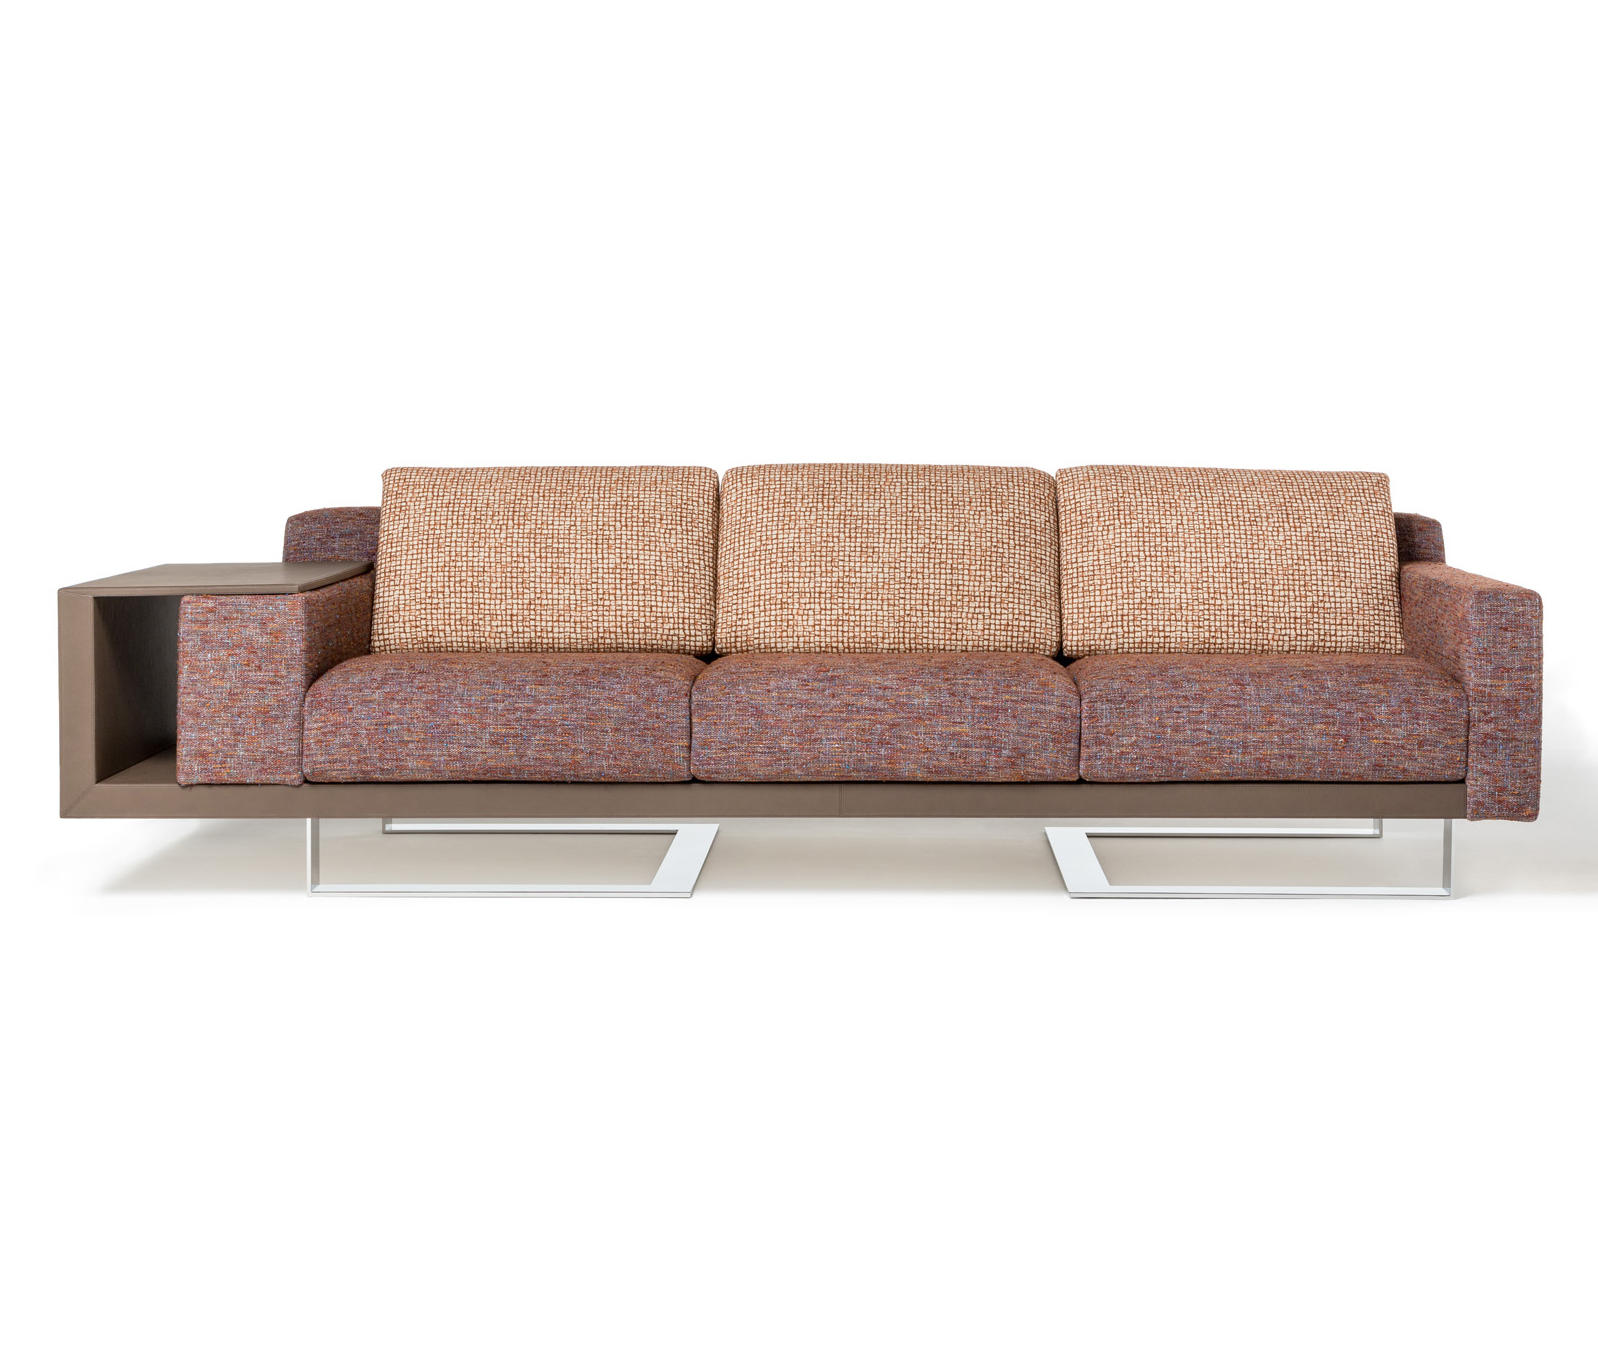 CORTE NOVA SOFA 3-SEAT - Sofas from Rubelli | Architonic